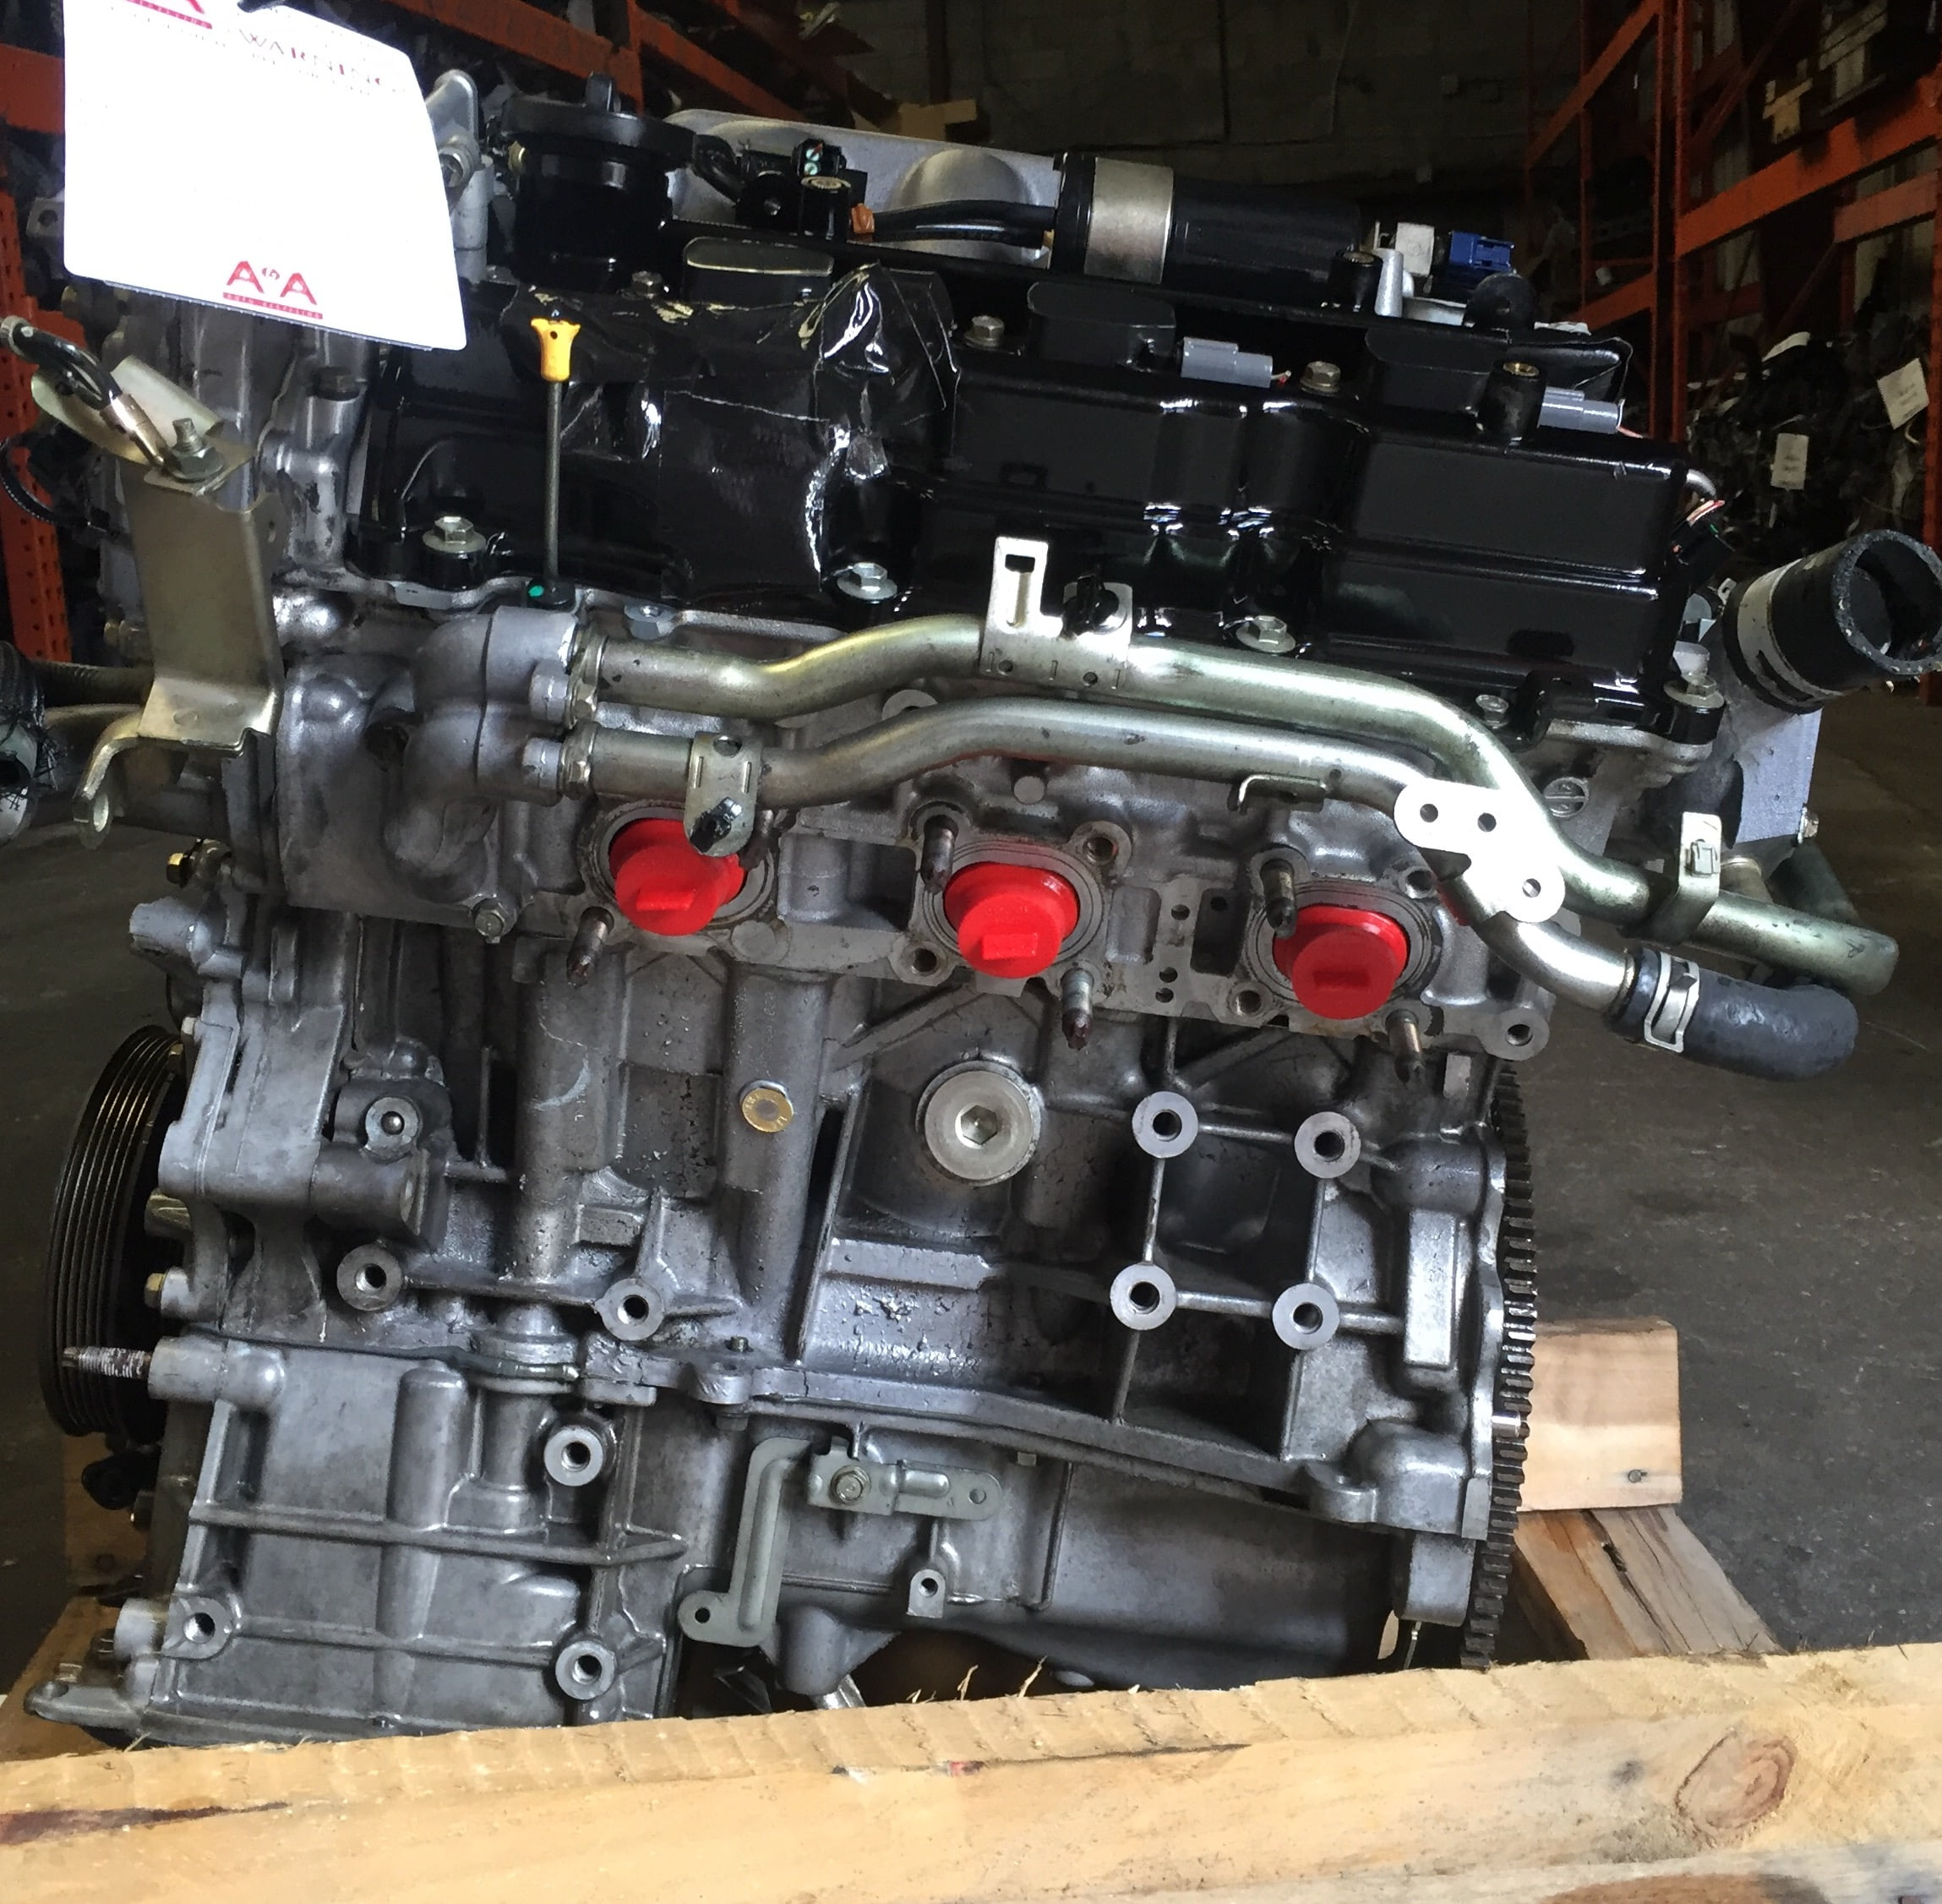 Size For 2005 Nissan Maxima On Wiring Harness For 2012 Nissan Versa